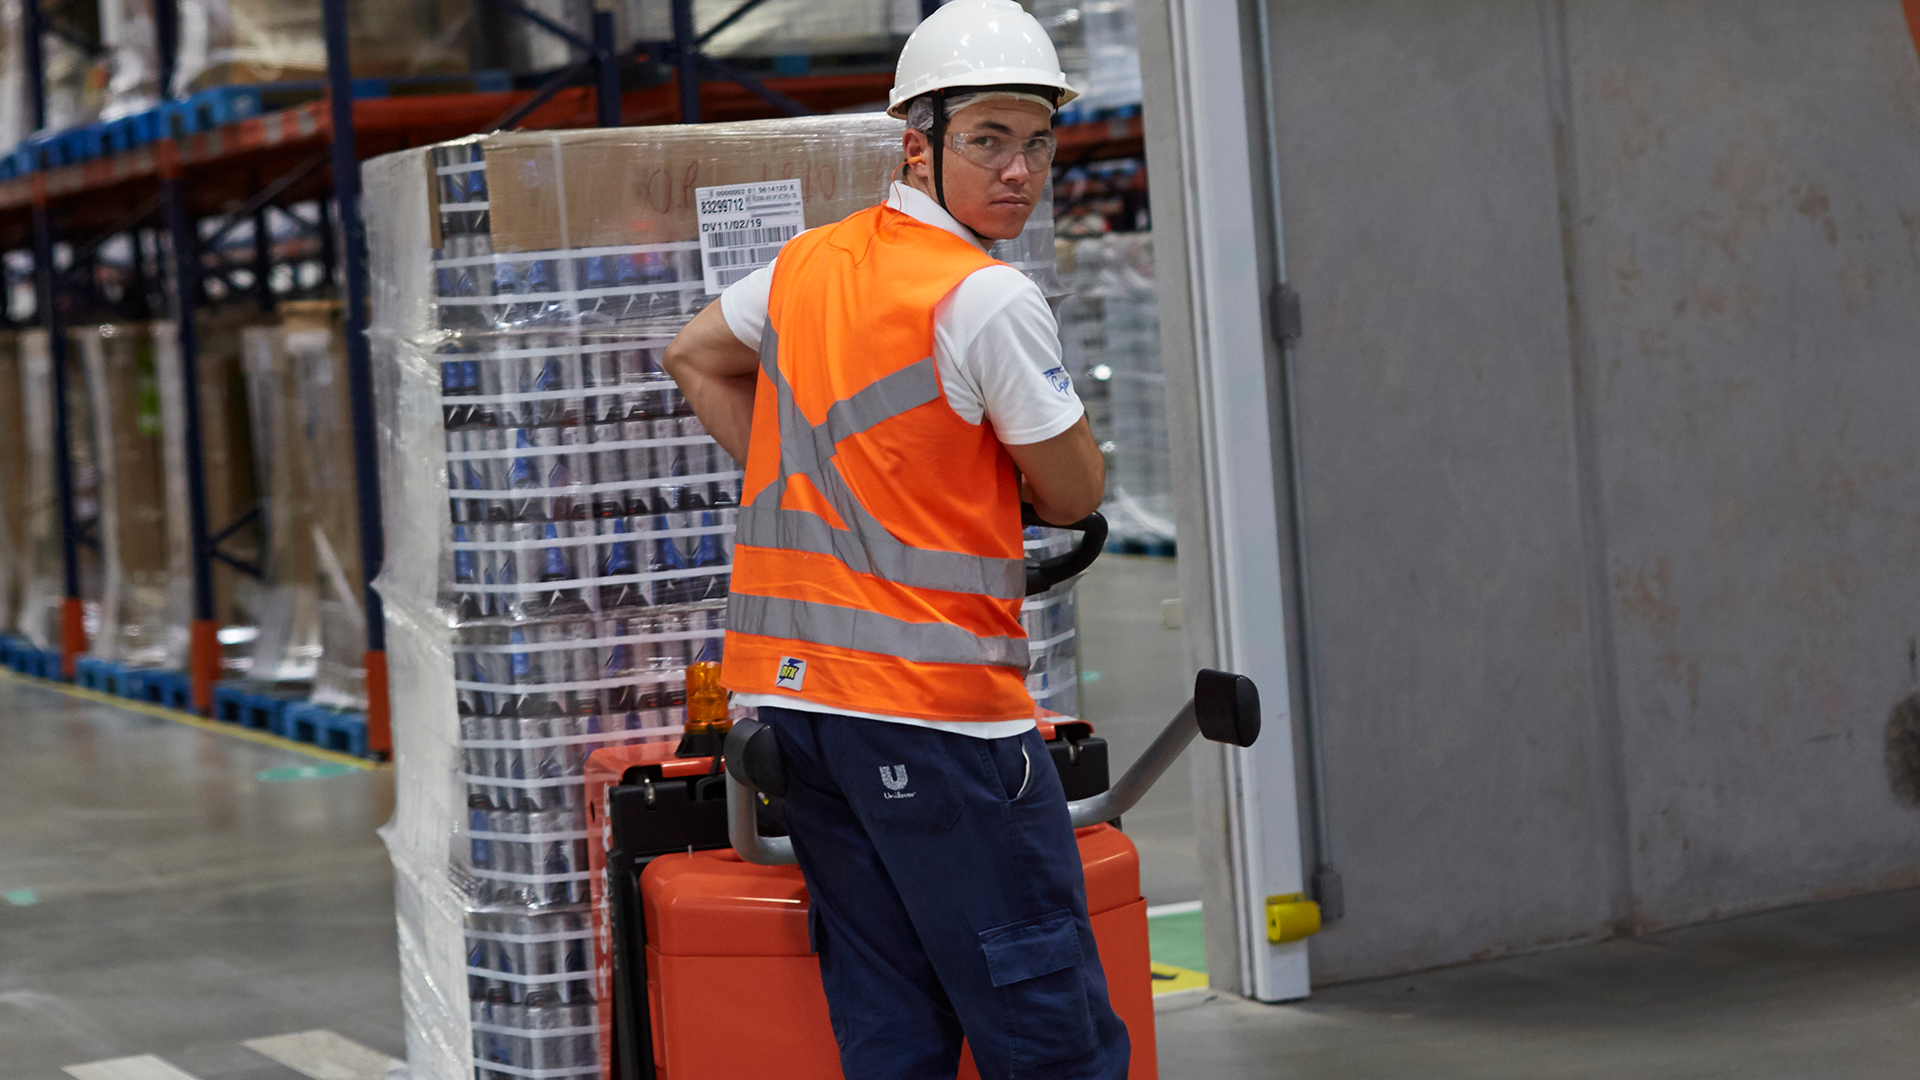 Worker in overalls and hard hat pulling a trolley across a factory floor